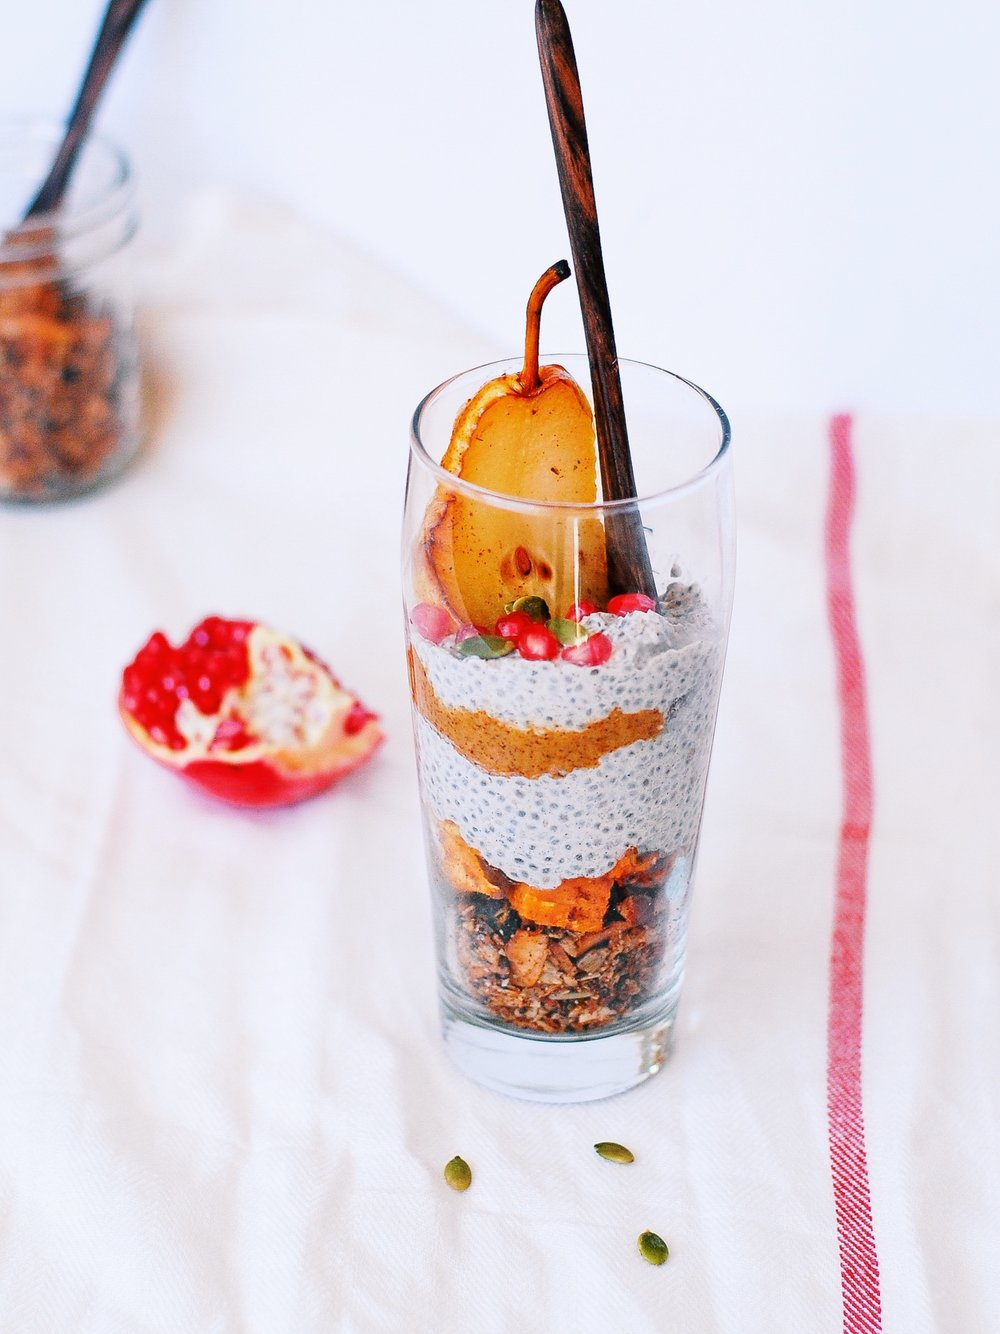 delicious layers of chai spiced grain-free granola + chia pudding+roasted cinnamon-y sweet potatoes+ almond butter + roasted pear+ seeds + pomegranates! Fall goodness to the max!